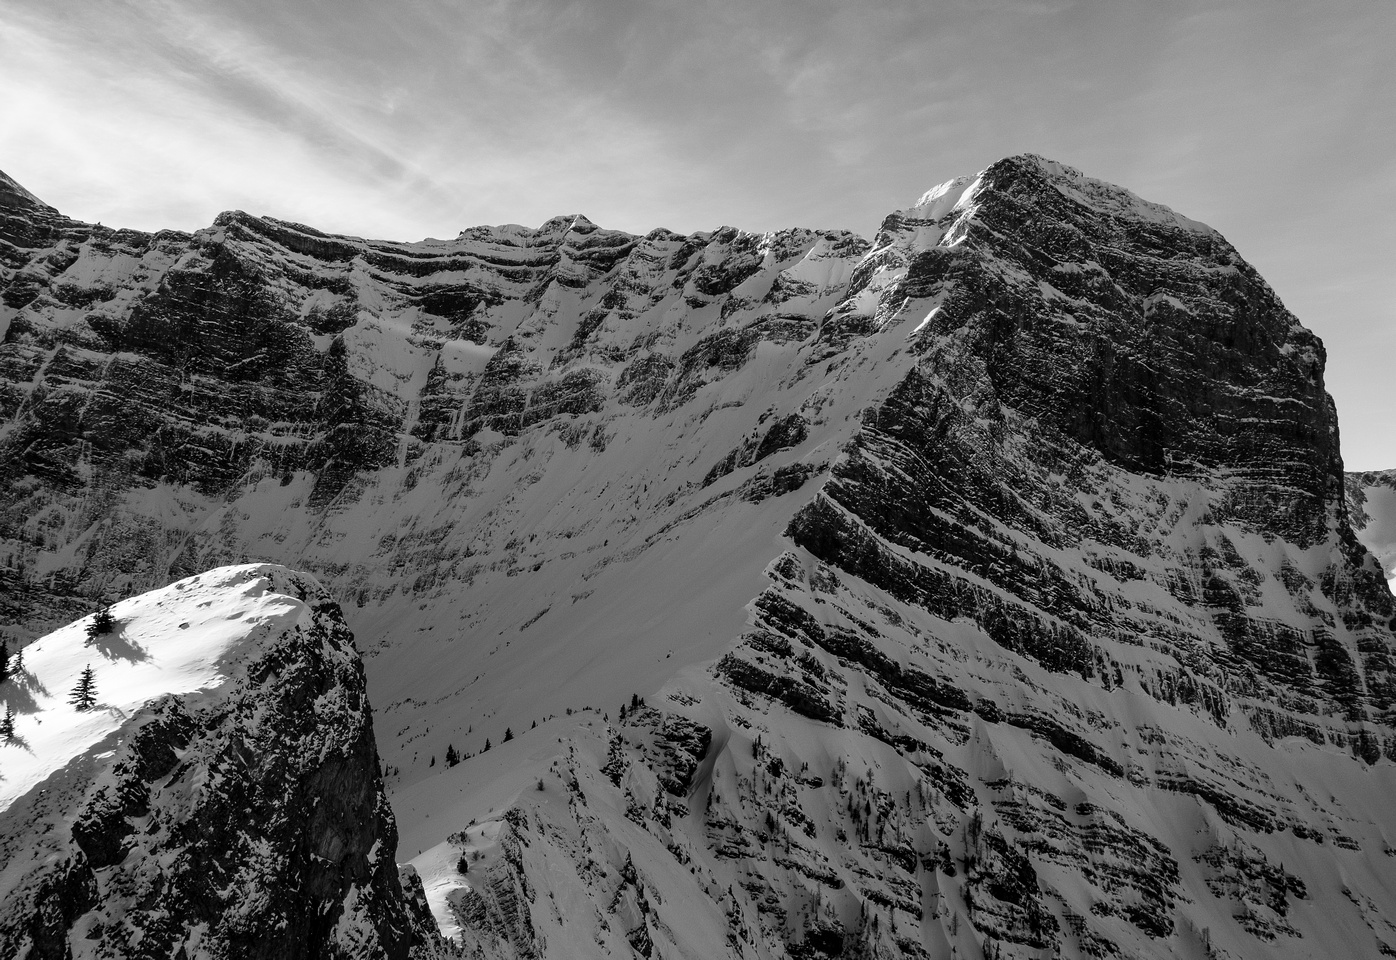 The summer route comes up from the lower left, Sarrail's east and northeast faces rise steeply above.